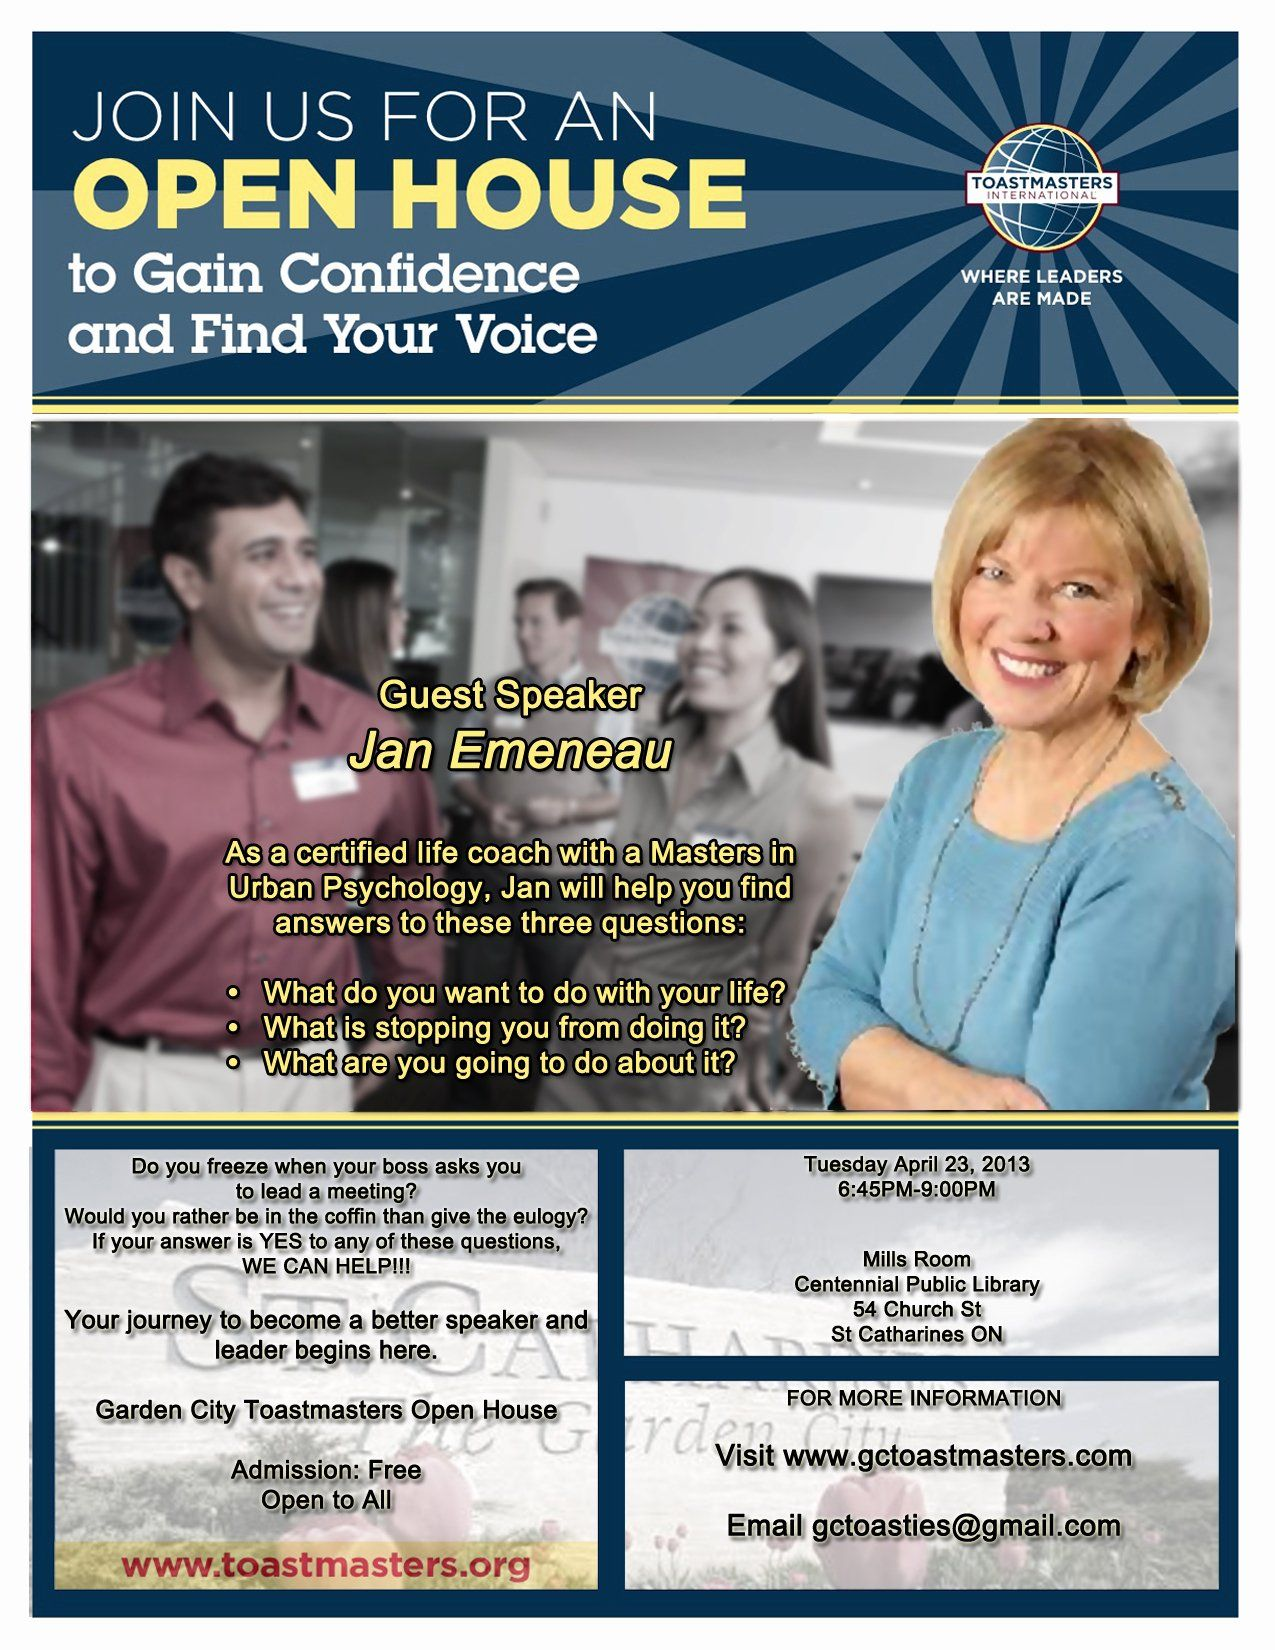 Open House Flyer Template Word Awesome Garden City Toastmasters Open House Tuesday April 23 Flyer Template Letter Template Word How To Gain Confidence